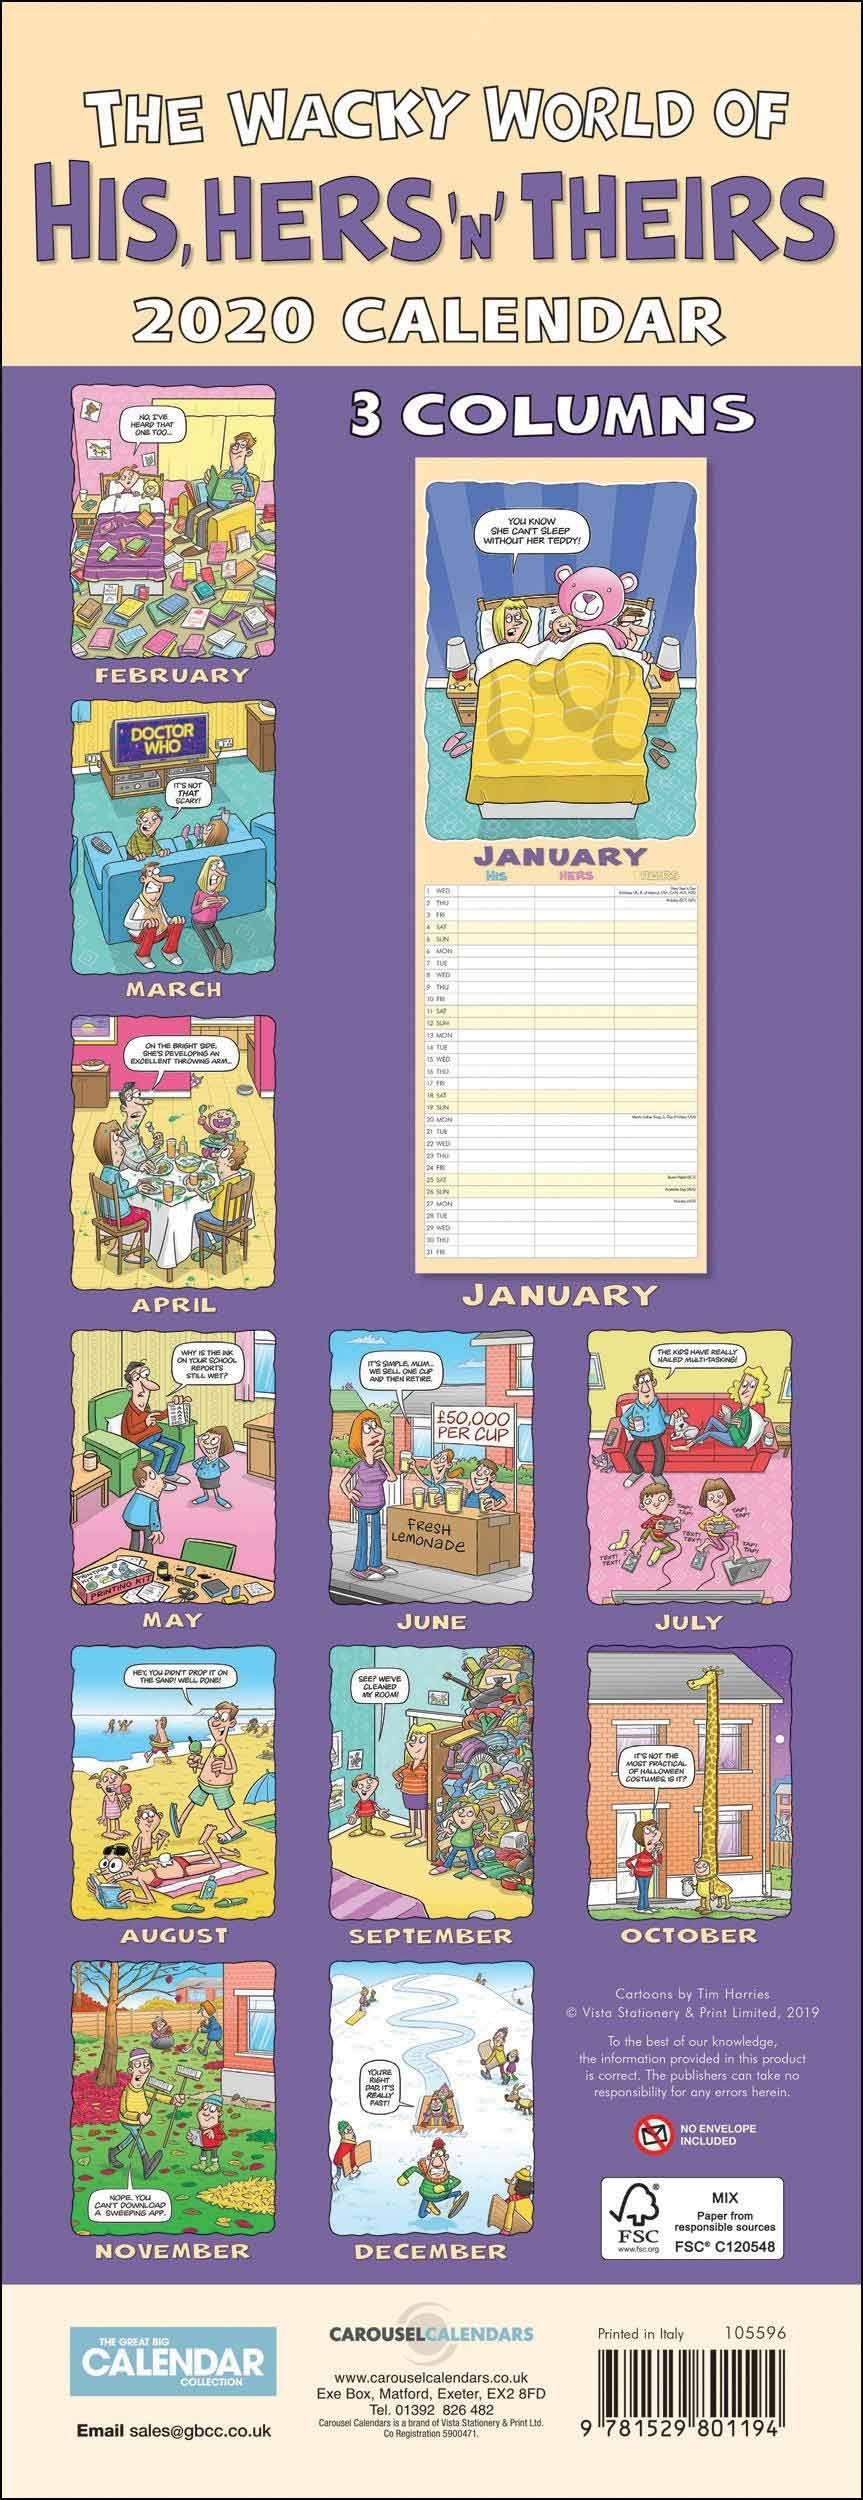 Wacky World Of His, Hers 'n' Theirs Slim Family Planner 2020